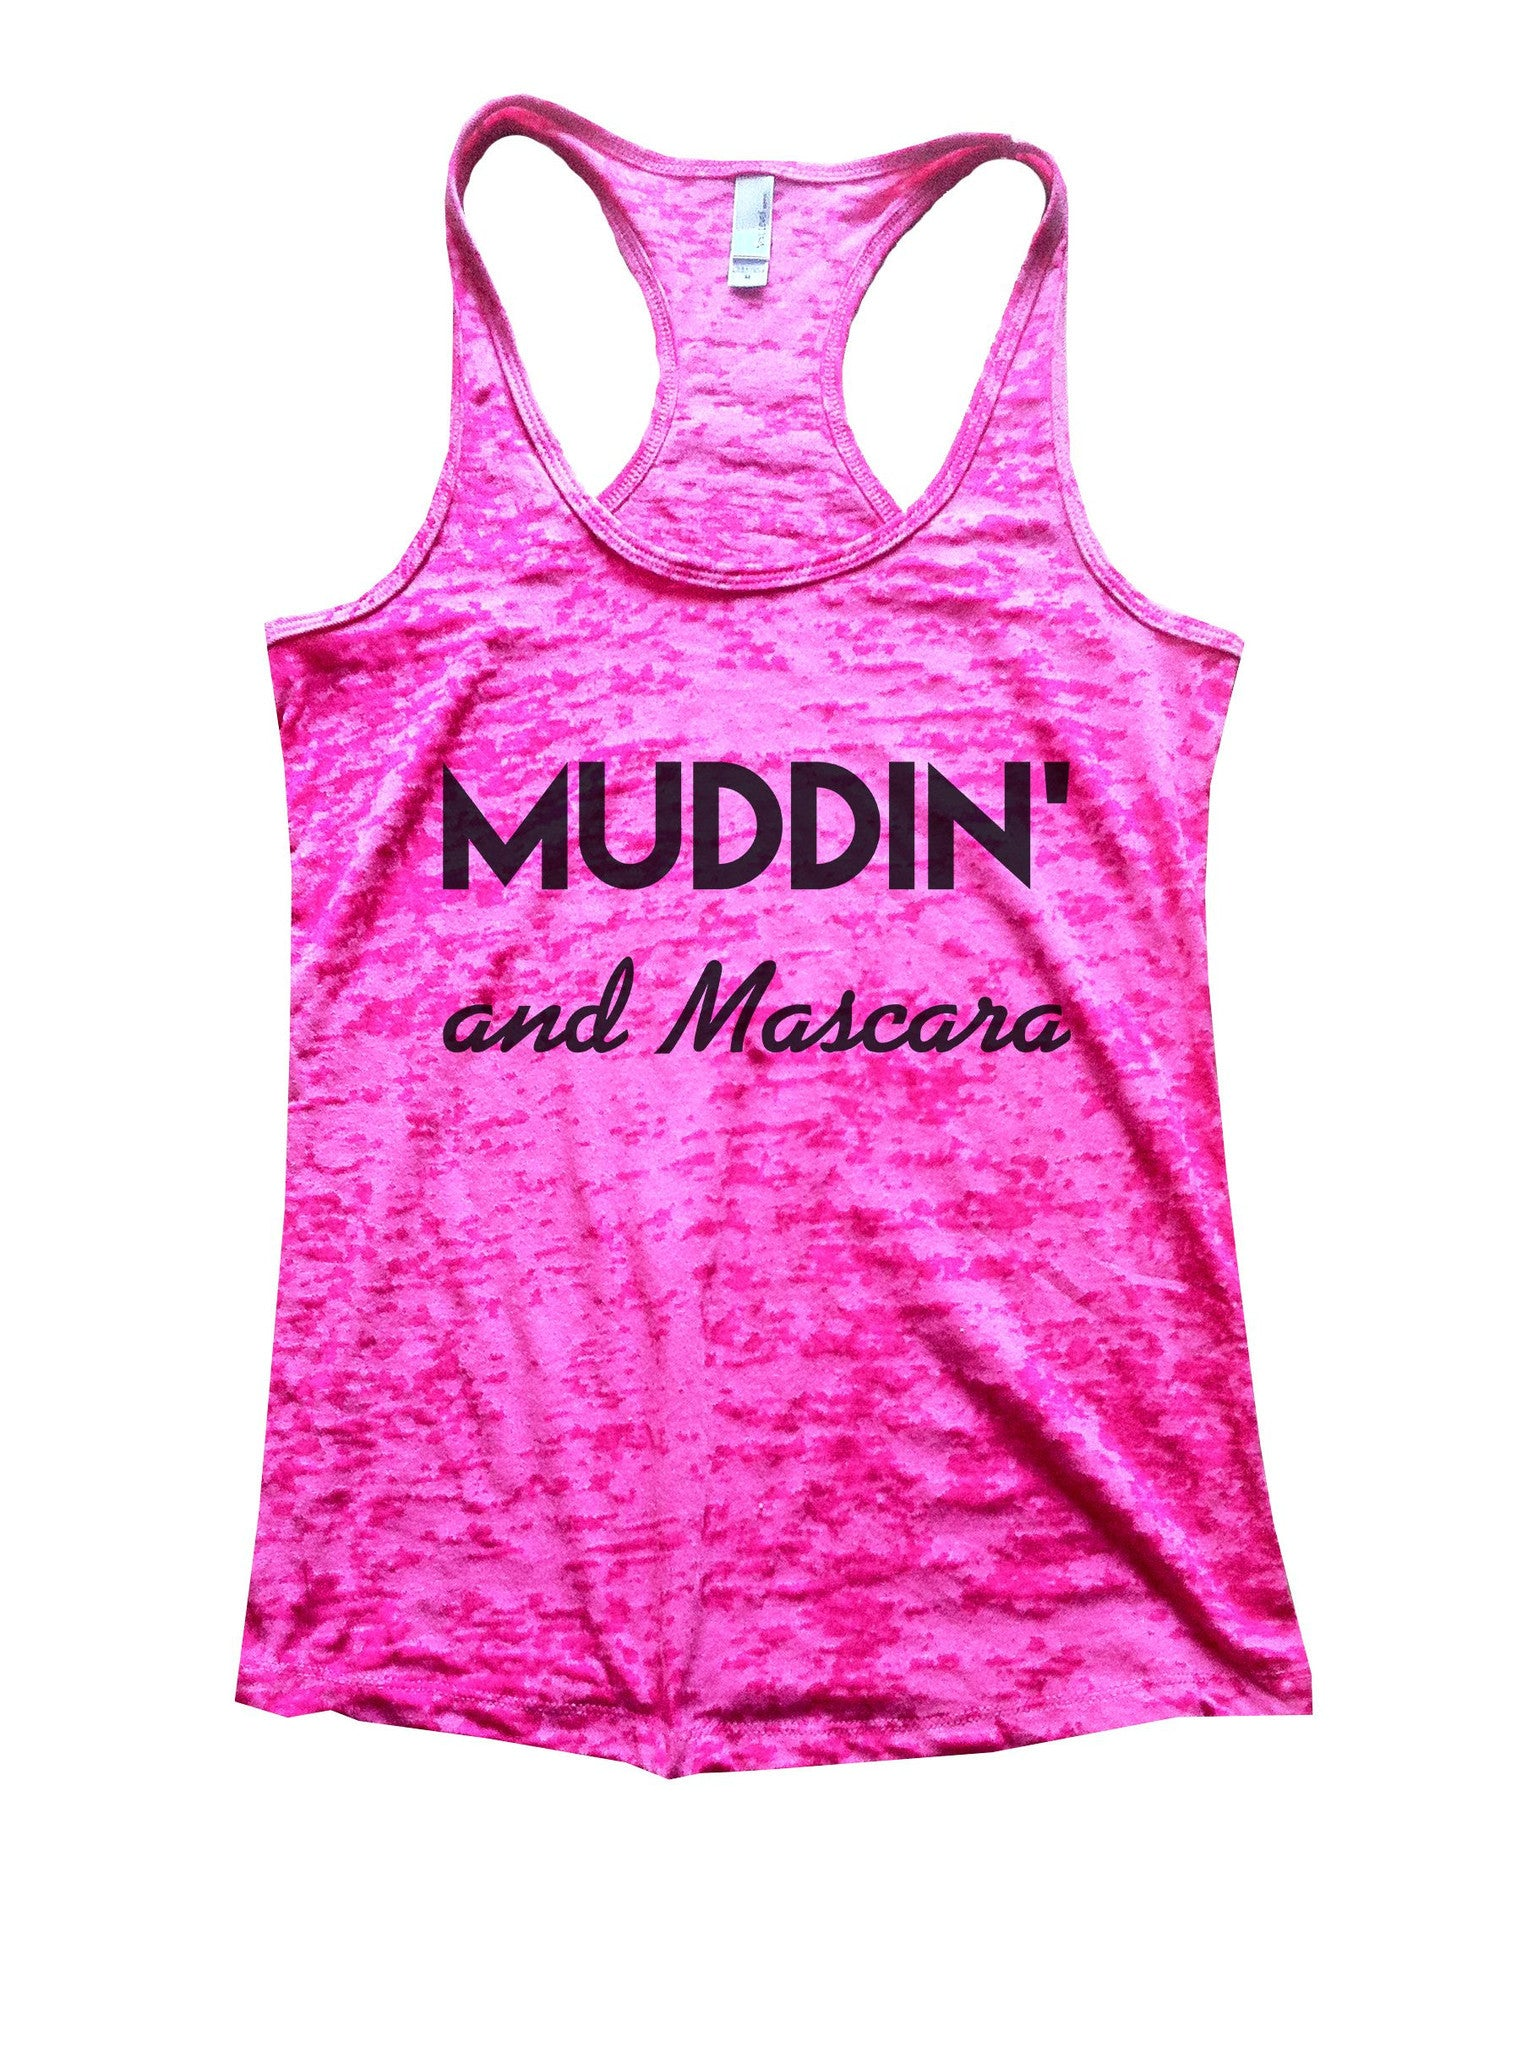 Muddin And Mascara Burnout Tank Top By BurnoutTankTops.com - 803 - Funny Shirts Tank Tops Burnouts and Triblends  - 7